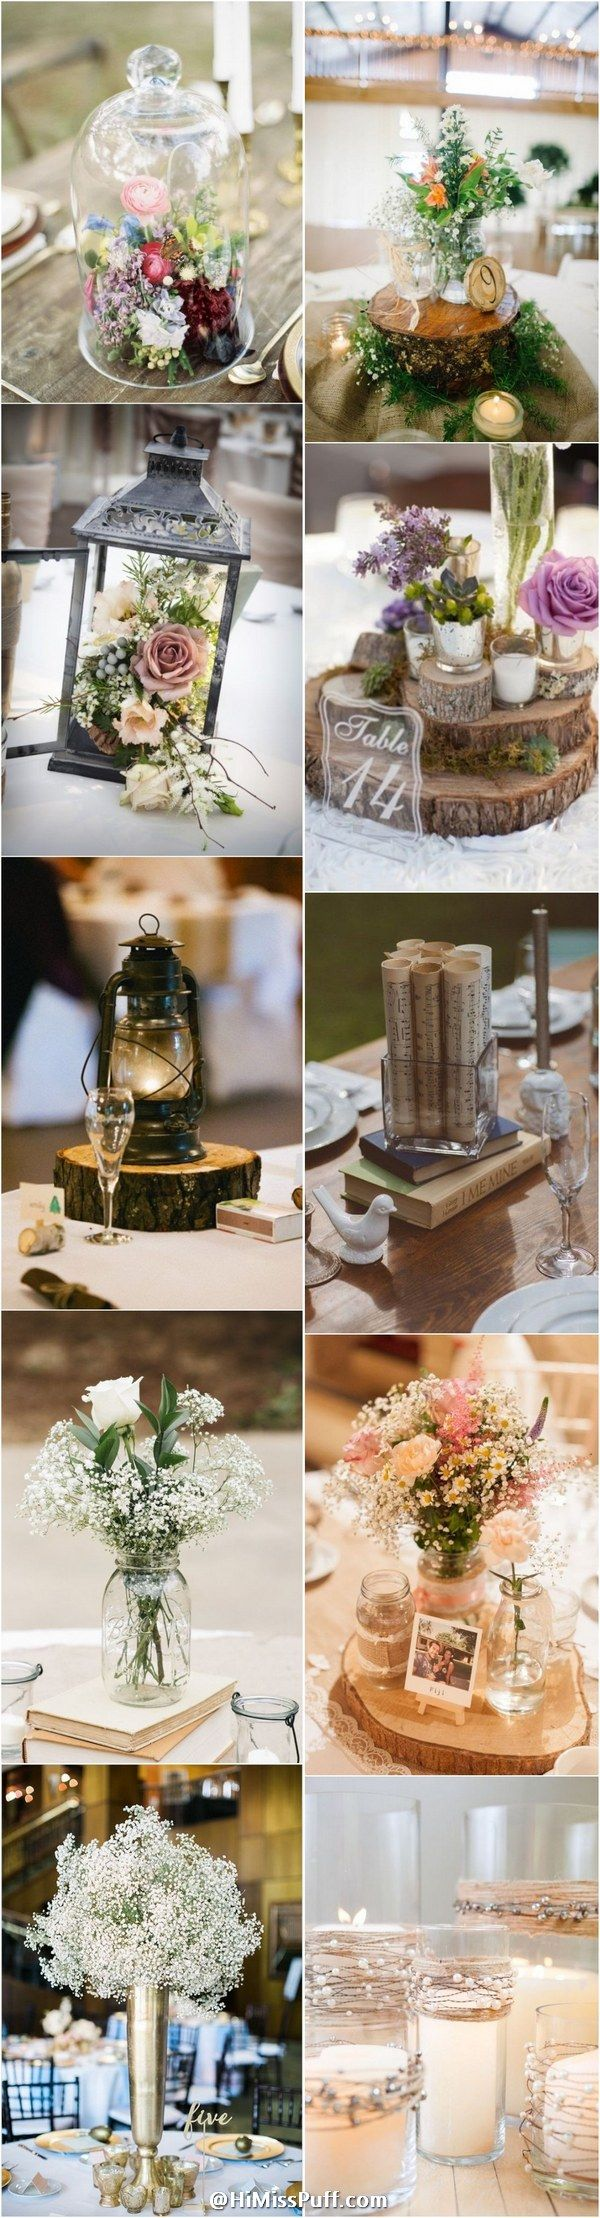 best rustic wedding rings images on pinterest wedding